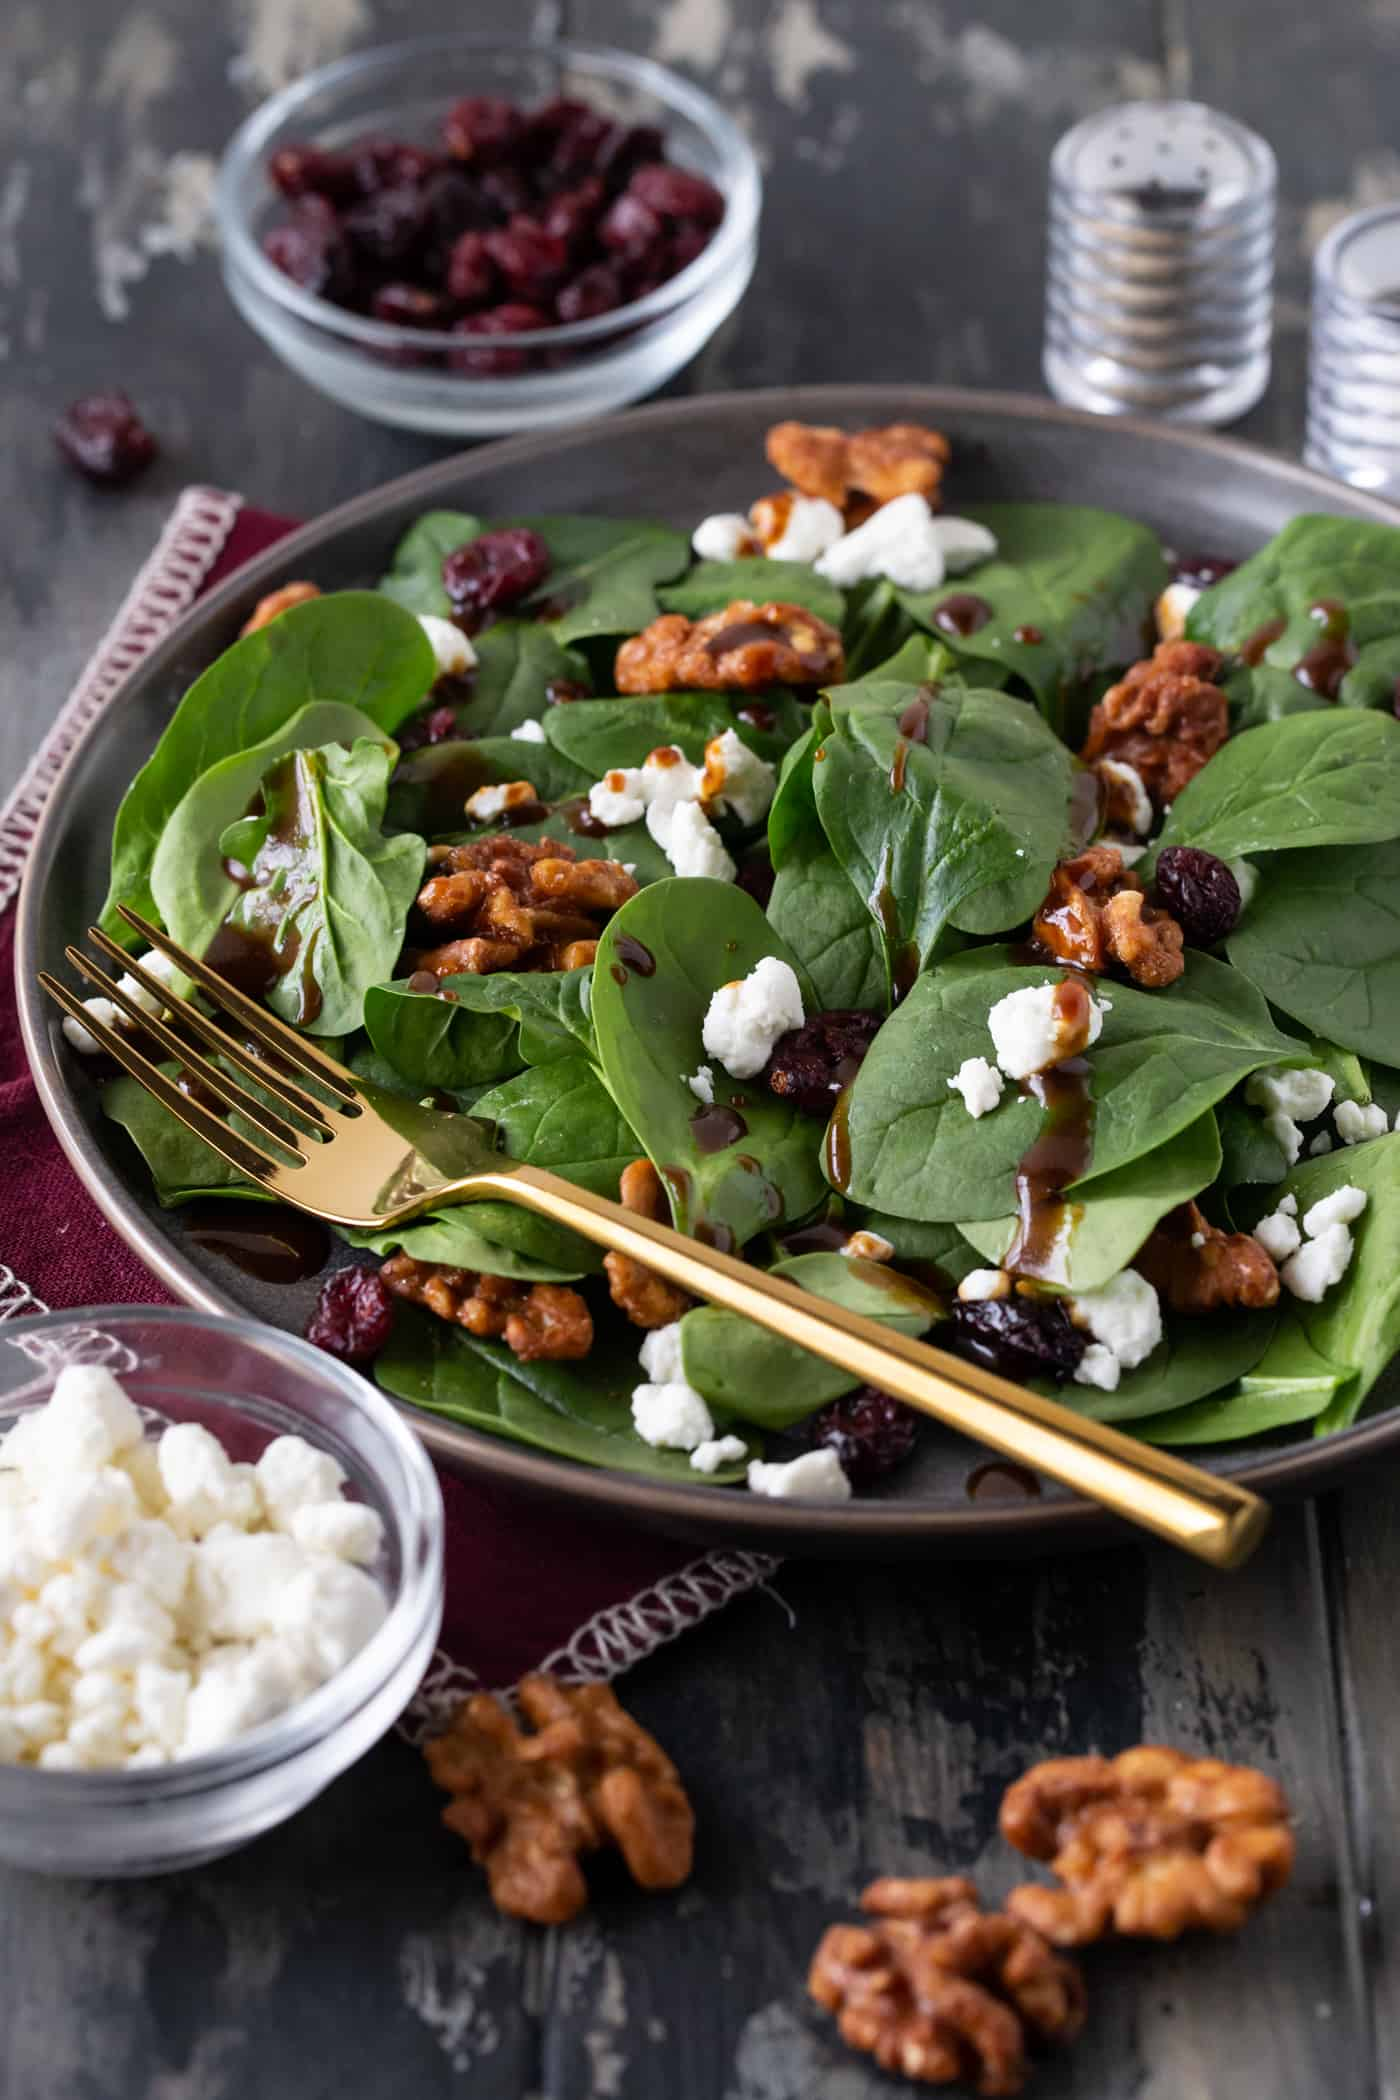 Spinach Salad with Goat Cheese, Craisins and Balsamic Vinaigrette on a grey plate with gold silverware.